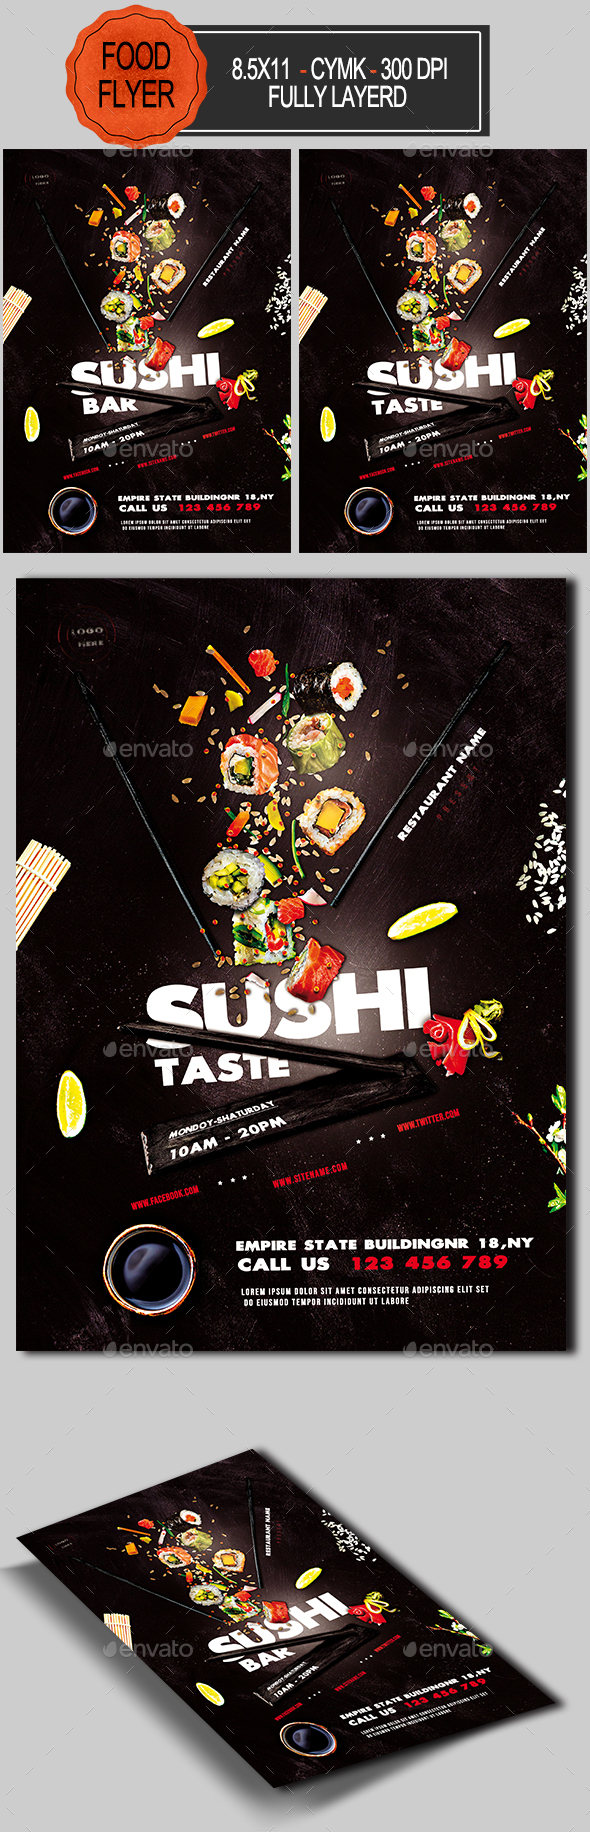 Sushi Promotion Flyer Template - Restaurant Flyers